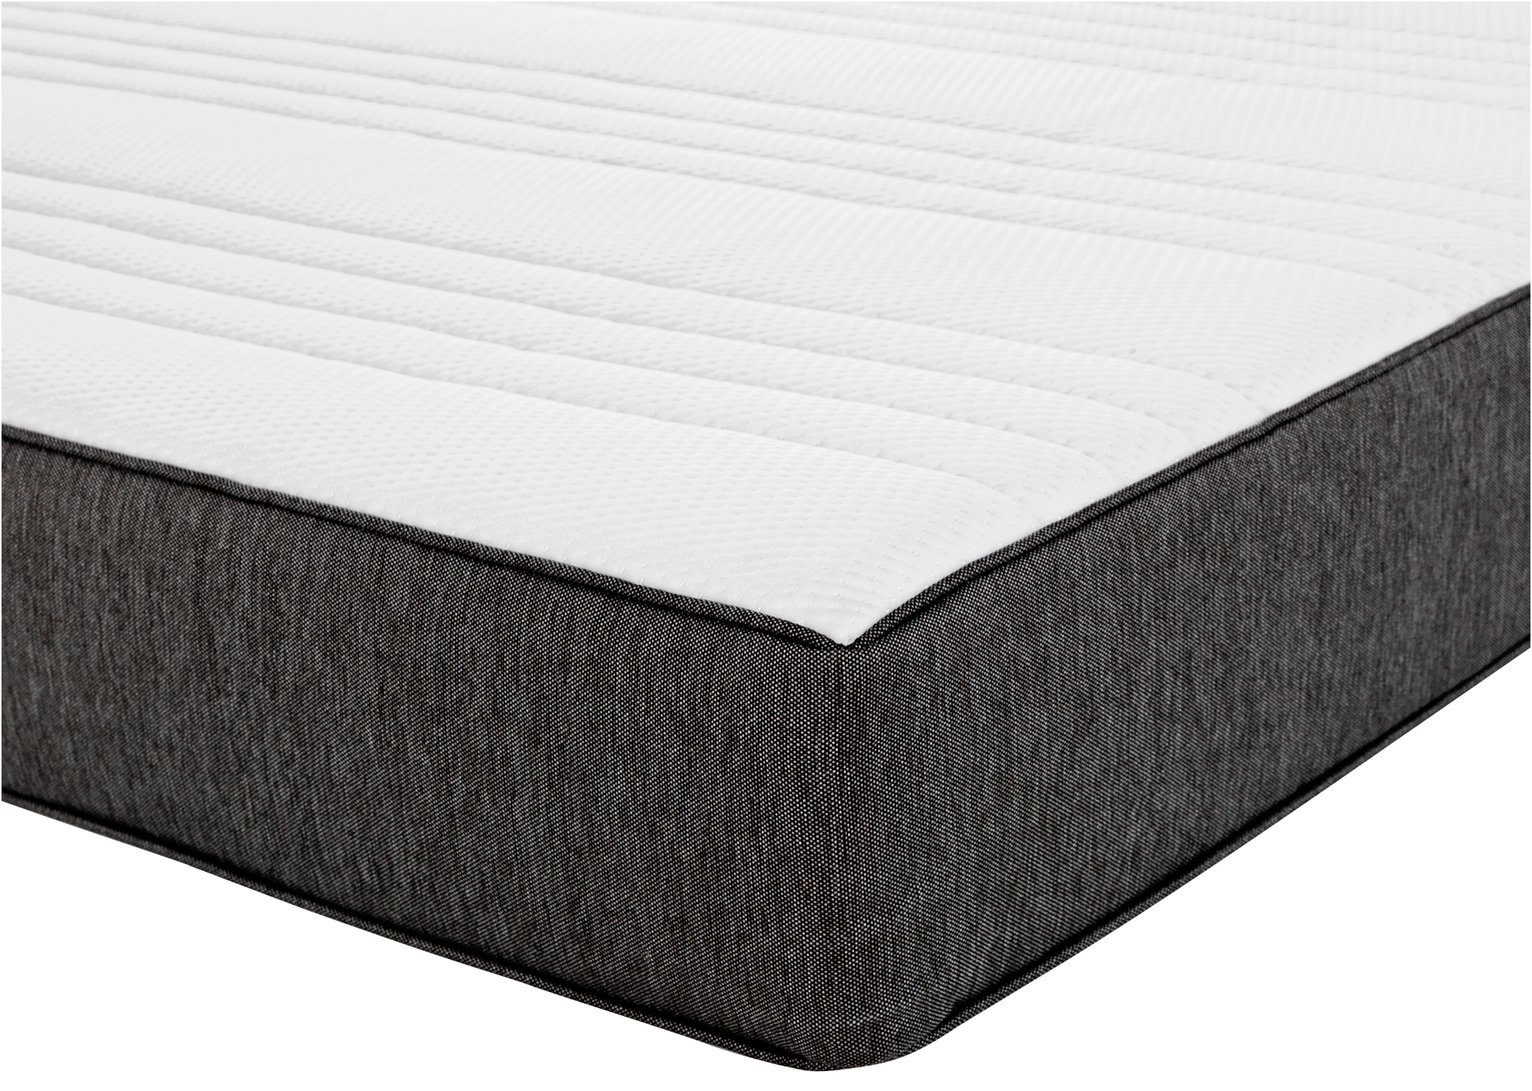 Argos Home Elite Memory Foam Double Mattress